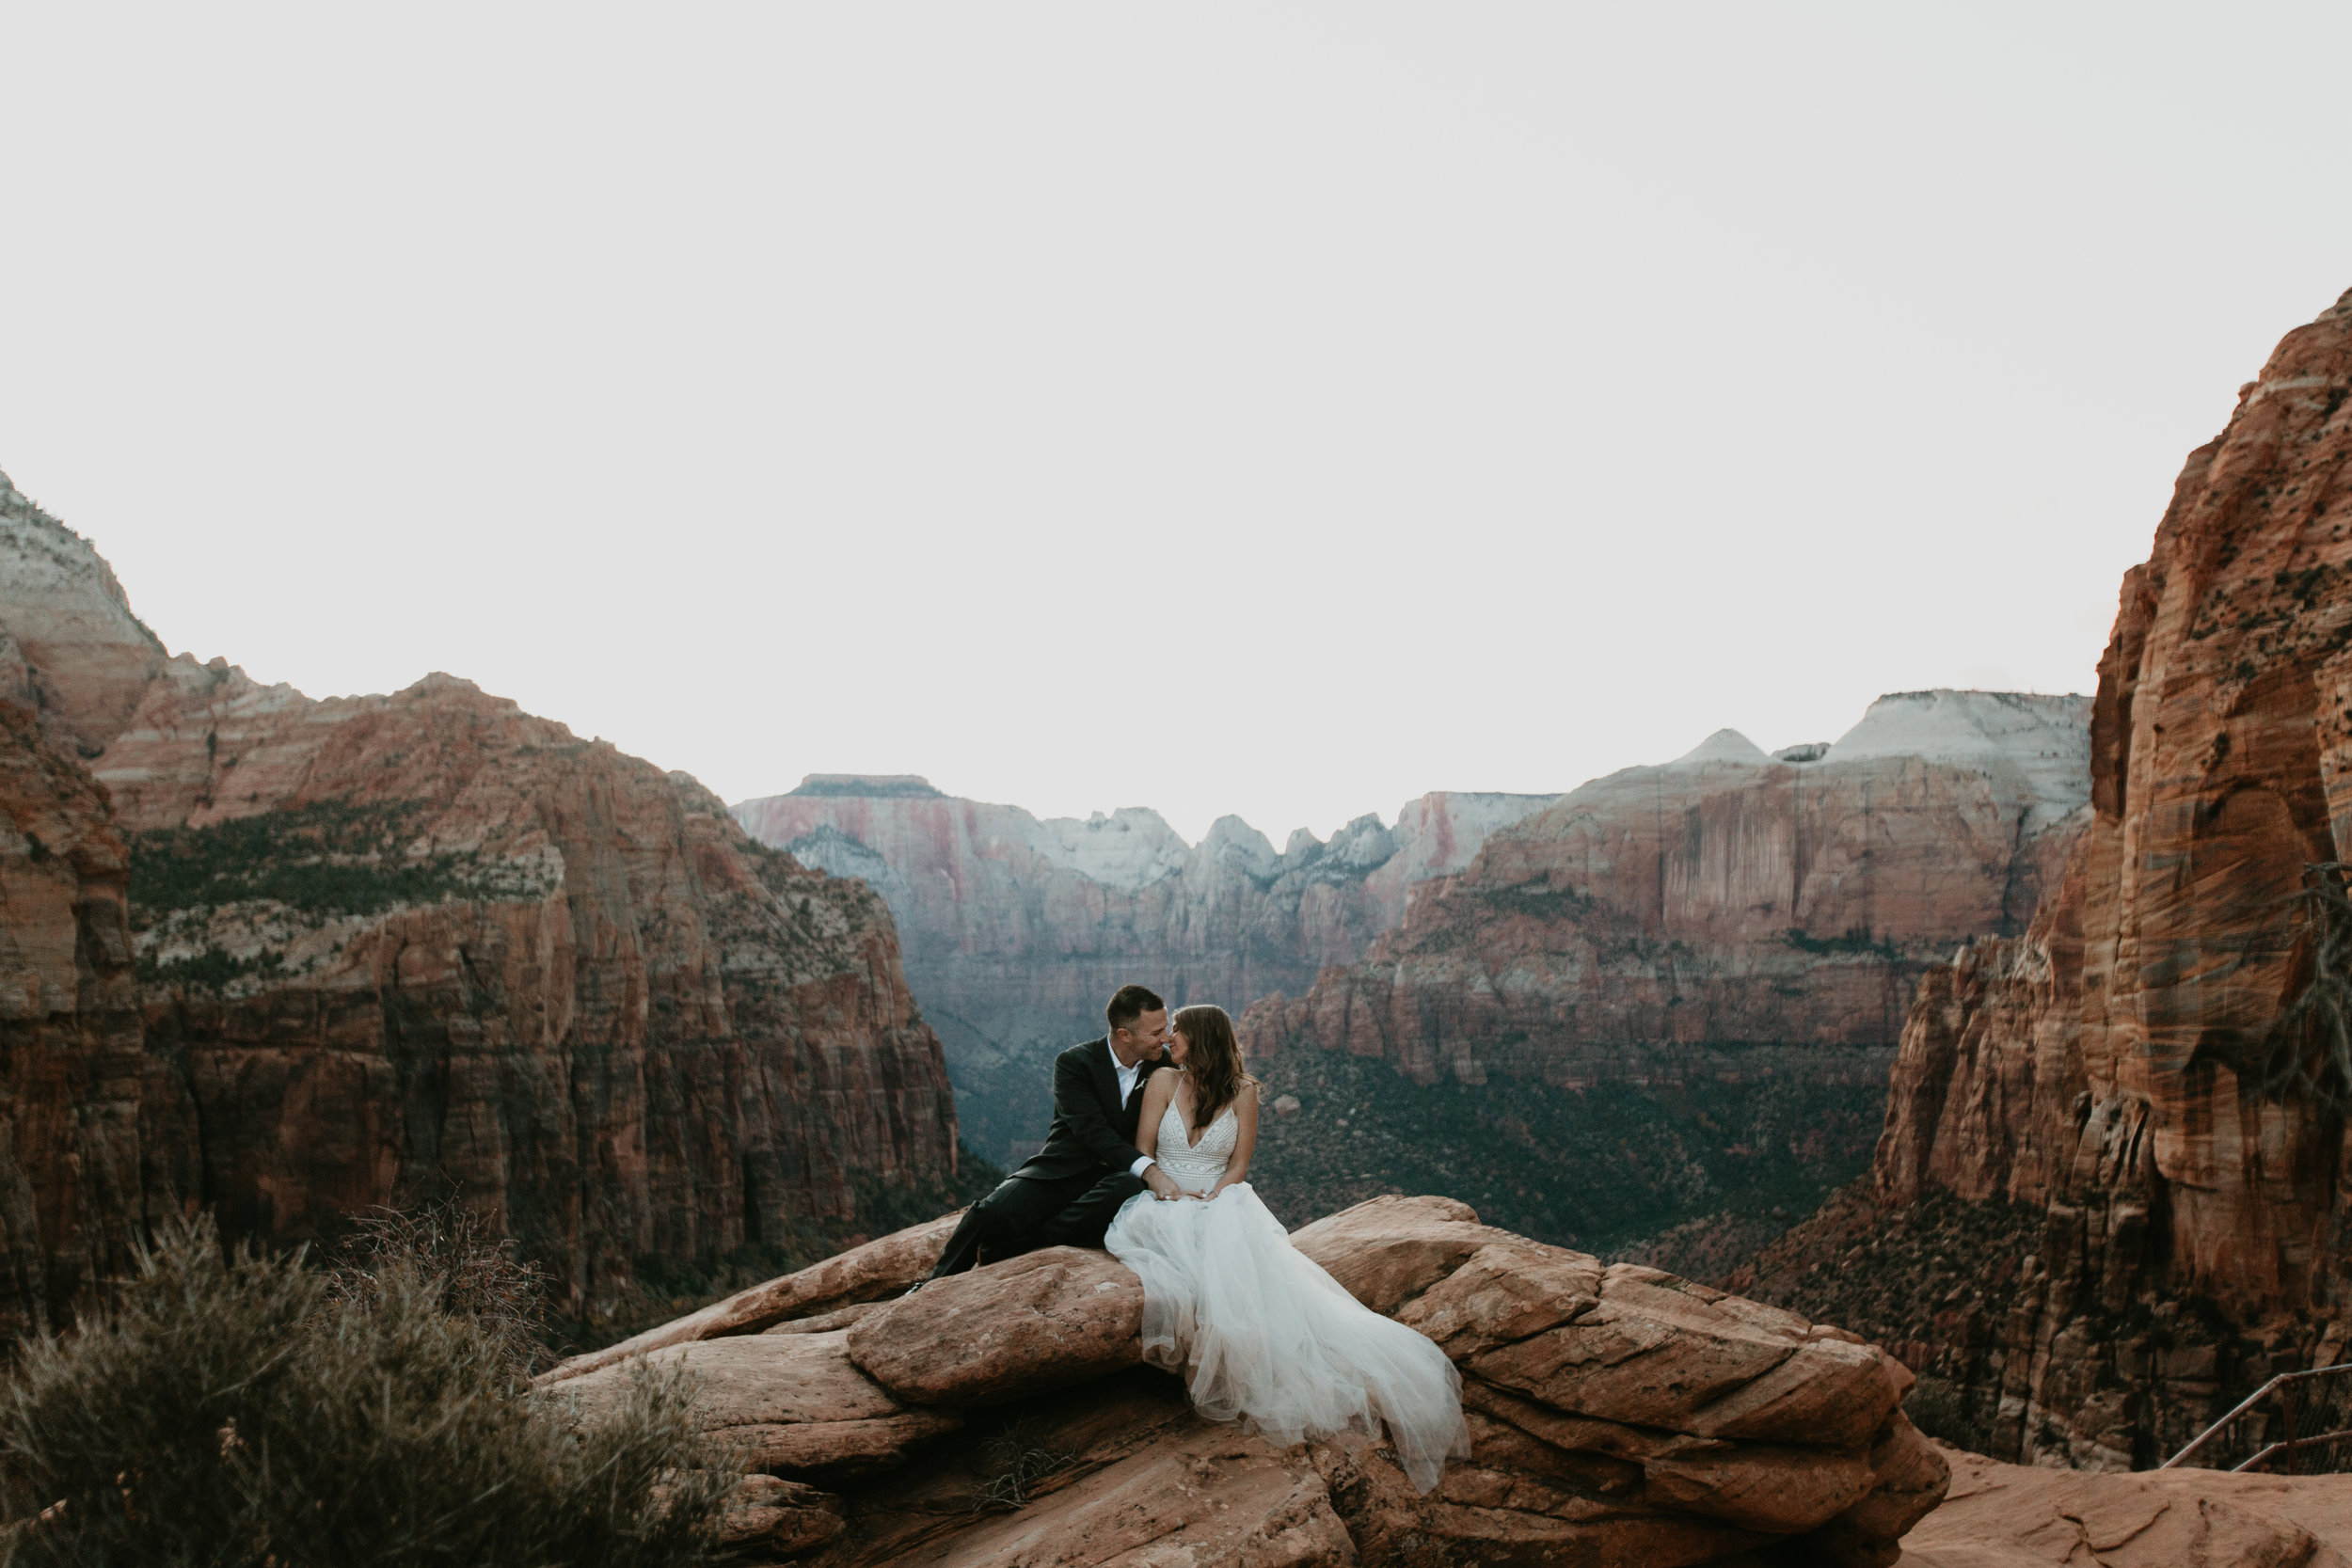 zion-national-park-elopement-photographer-adventure-adventurous-elopement-photographer-photography-in-national-parks-utah-red-rock-sunset-canyon-trail-destination-intimate-wedding-photos-36.jpg